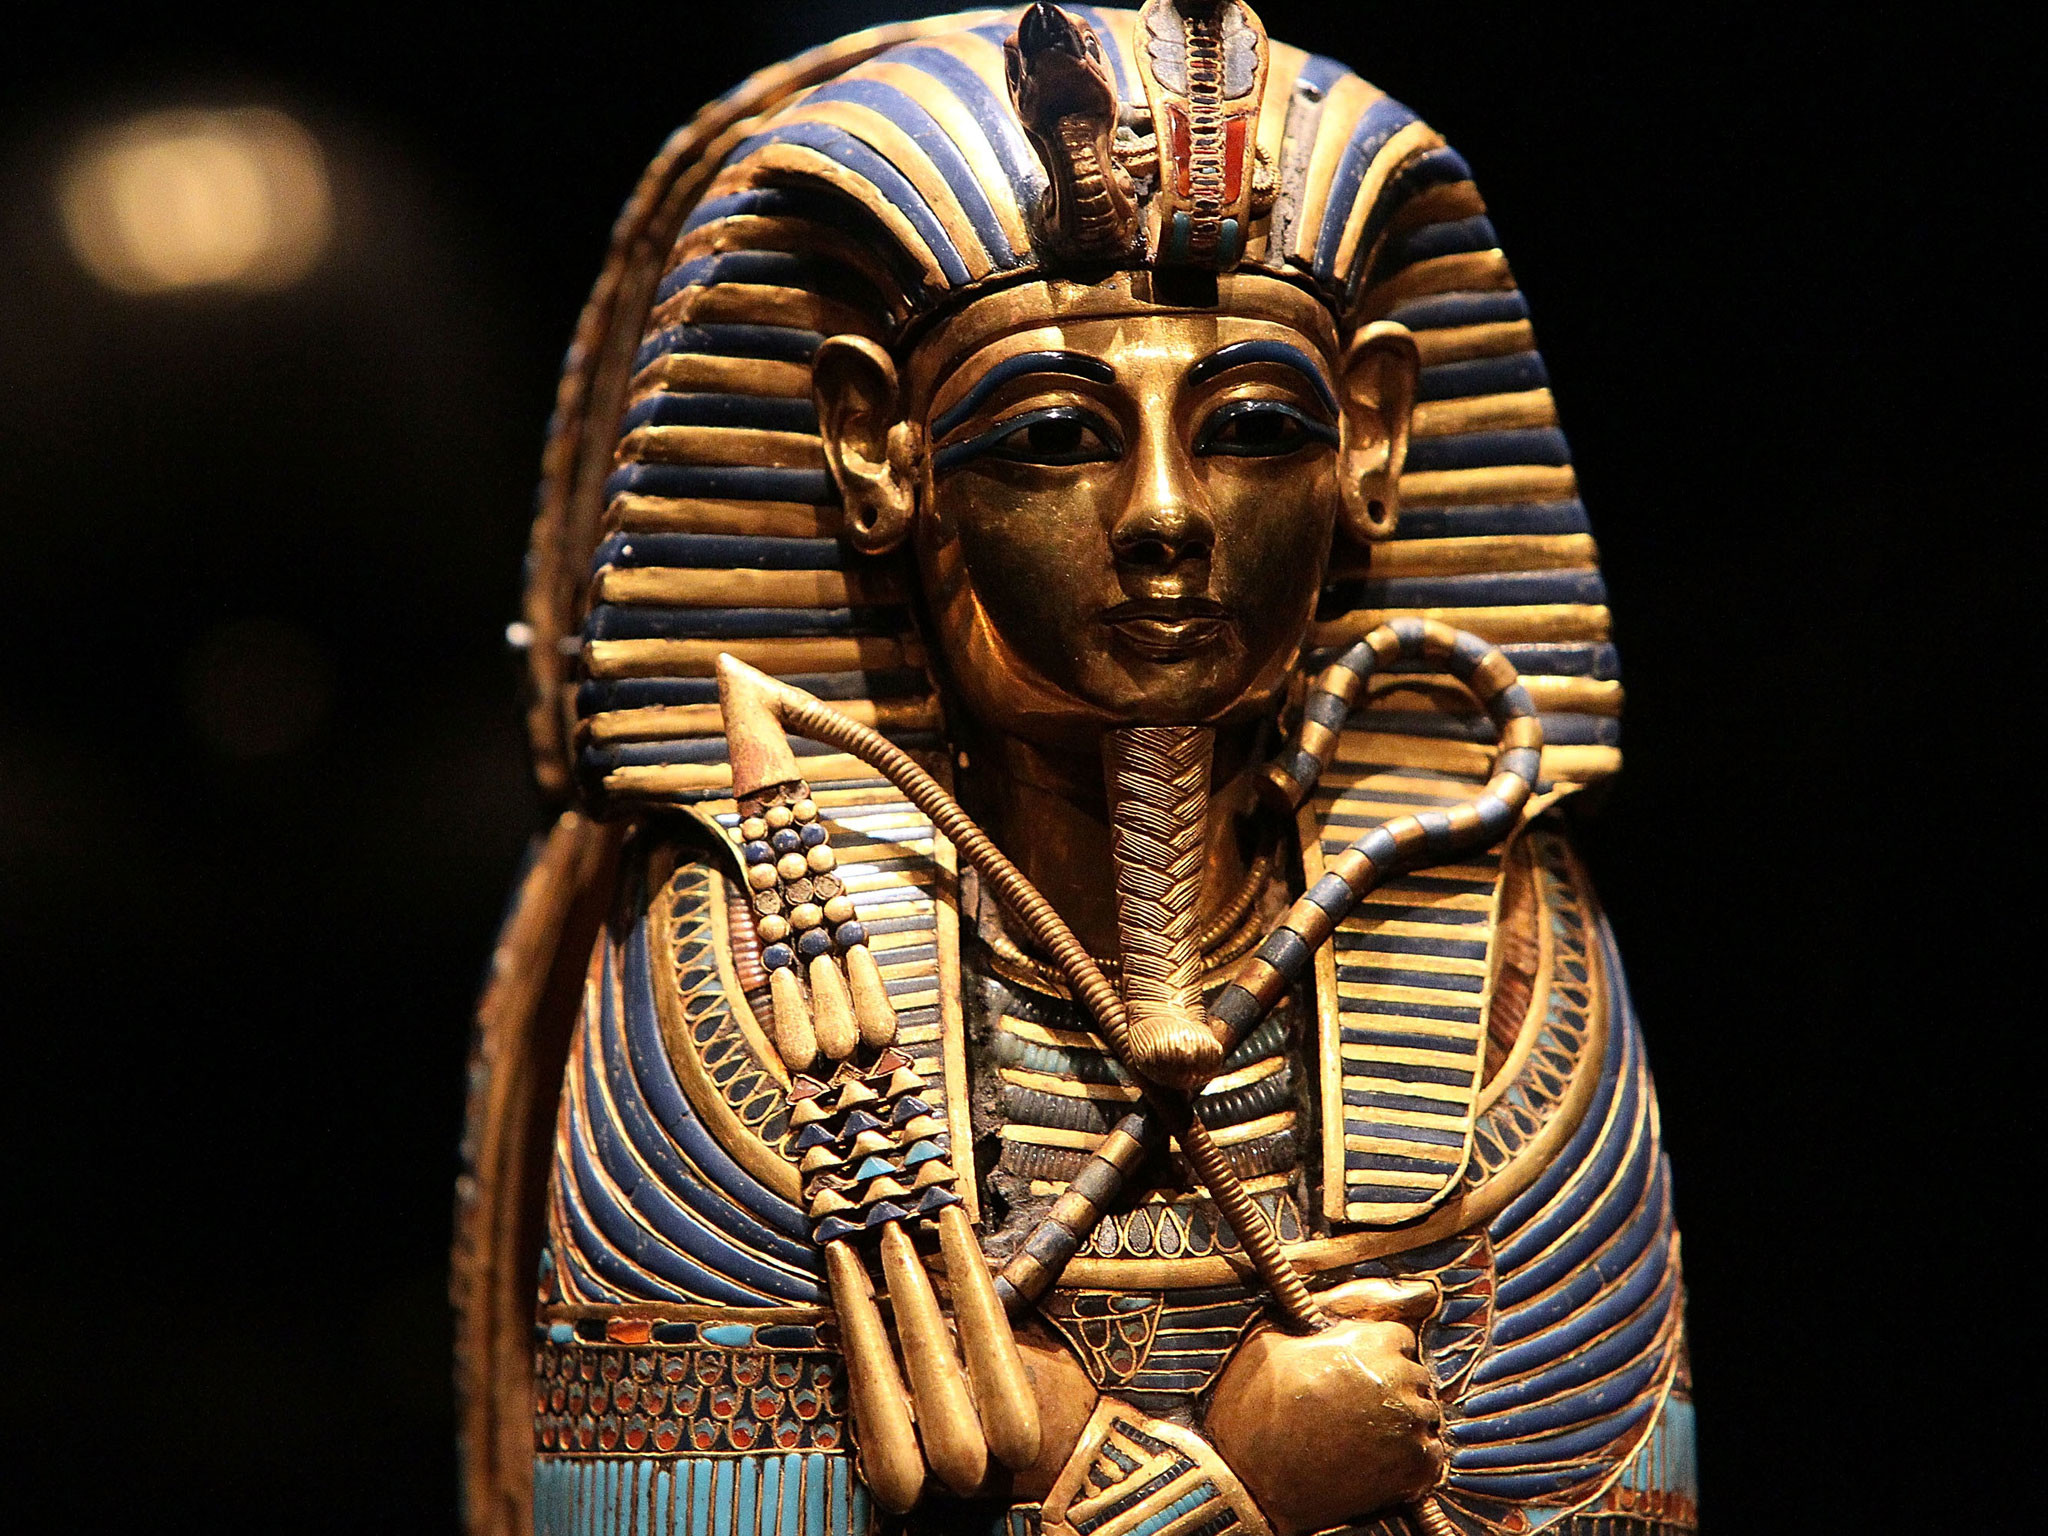 Register as an organ donor and ensure life after death – ancient Egyptian-style  | The Independent